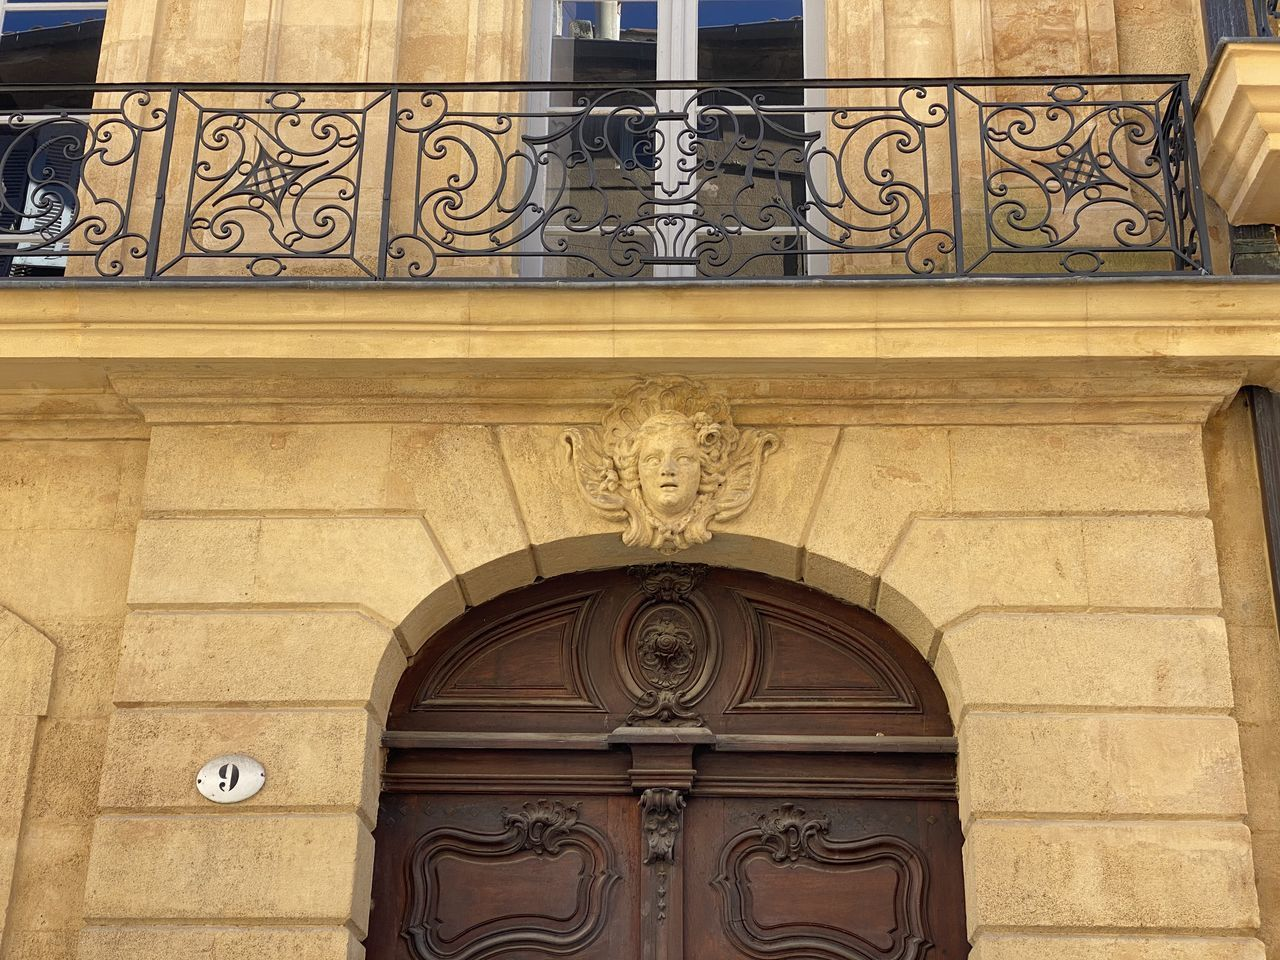 architecture, built structure, building exterior, no people, arch, low angle view, building, ornate, day, design, wall - building feature, art and craft, entrance, the past, history, pattern, wall, craft, outdoors, door, floral pattern, bas relief